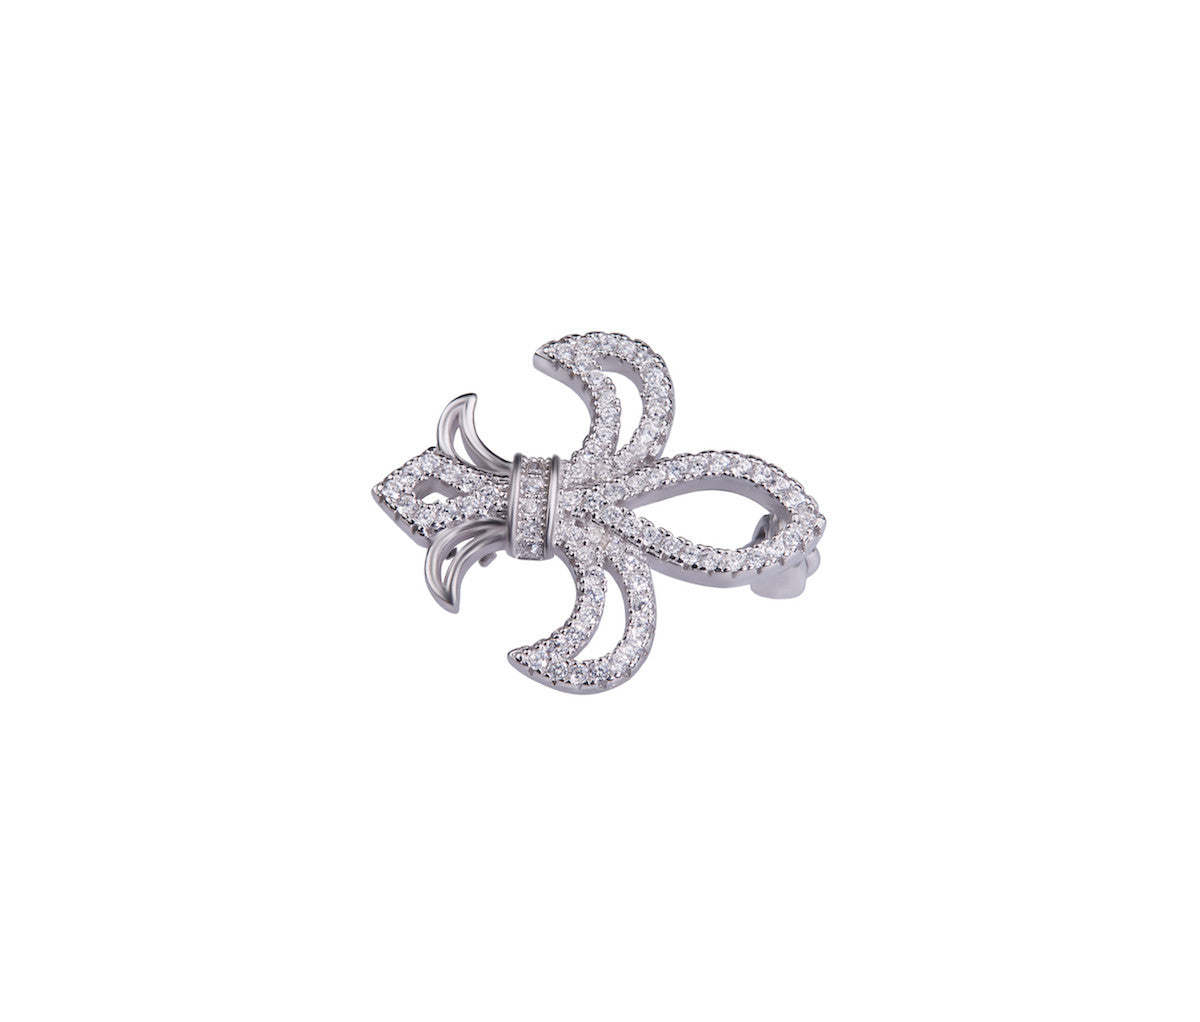 Silver Royalty Brooch